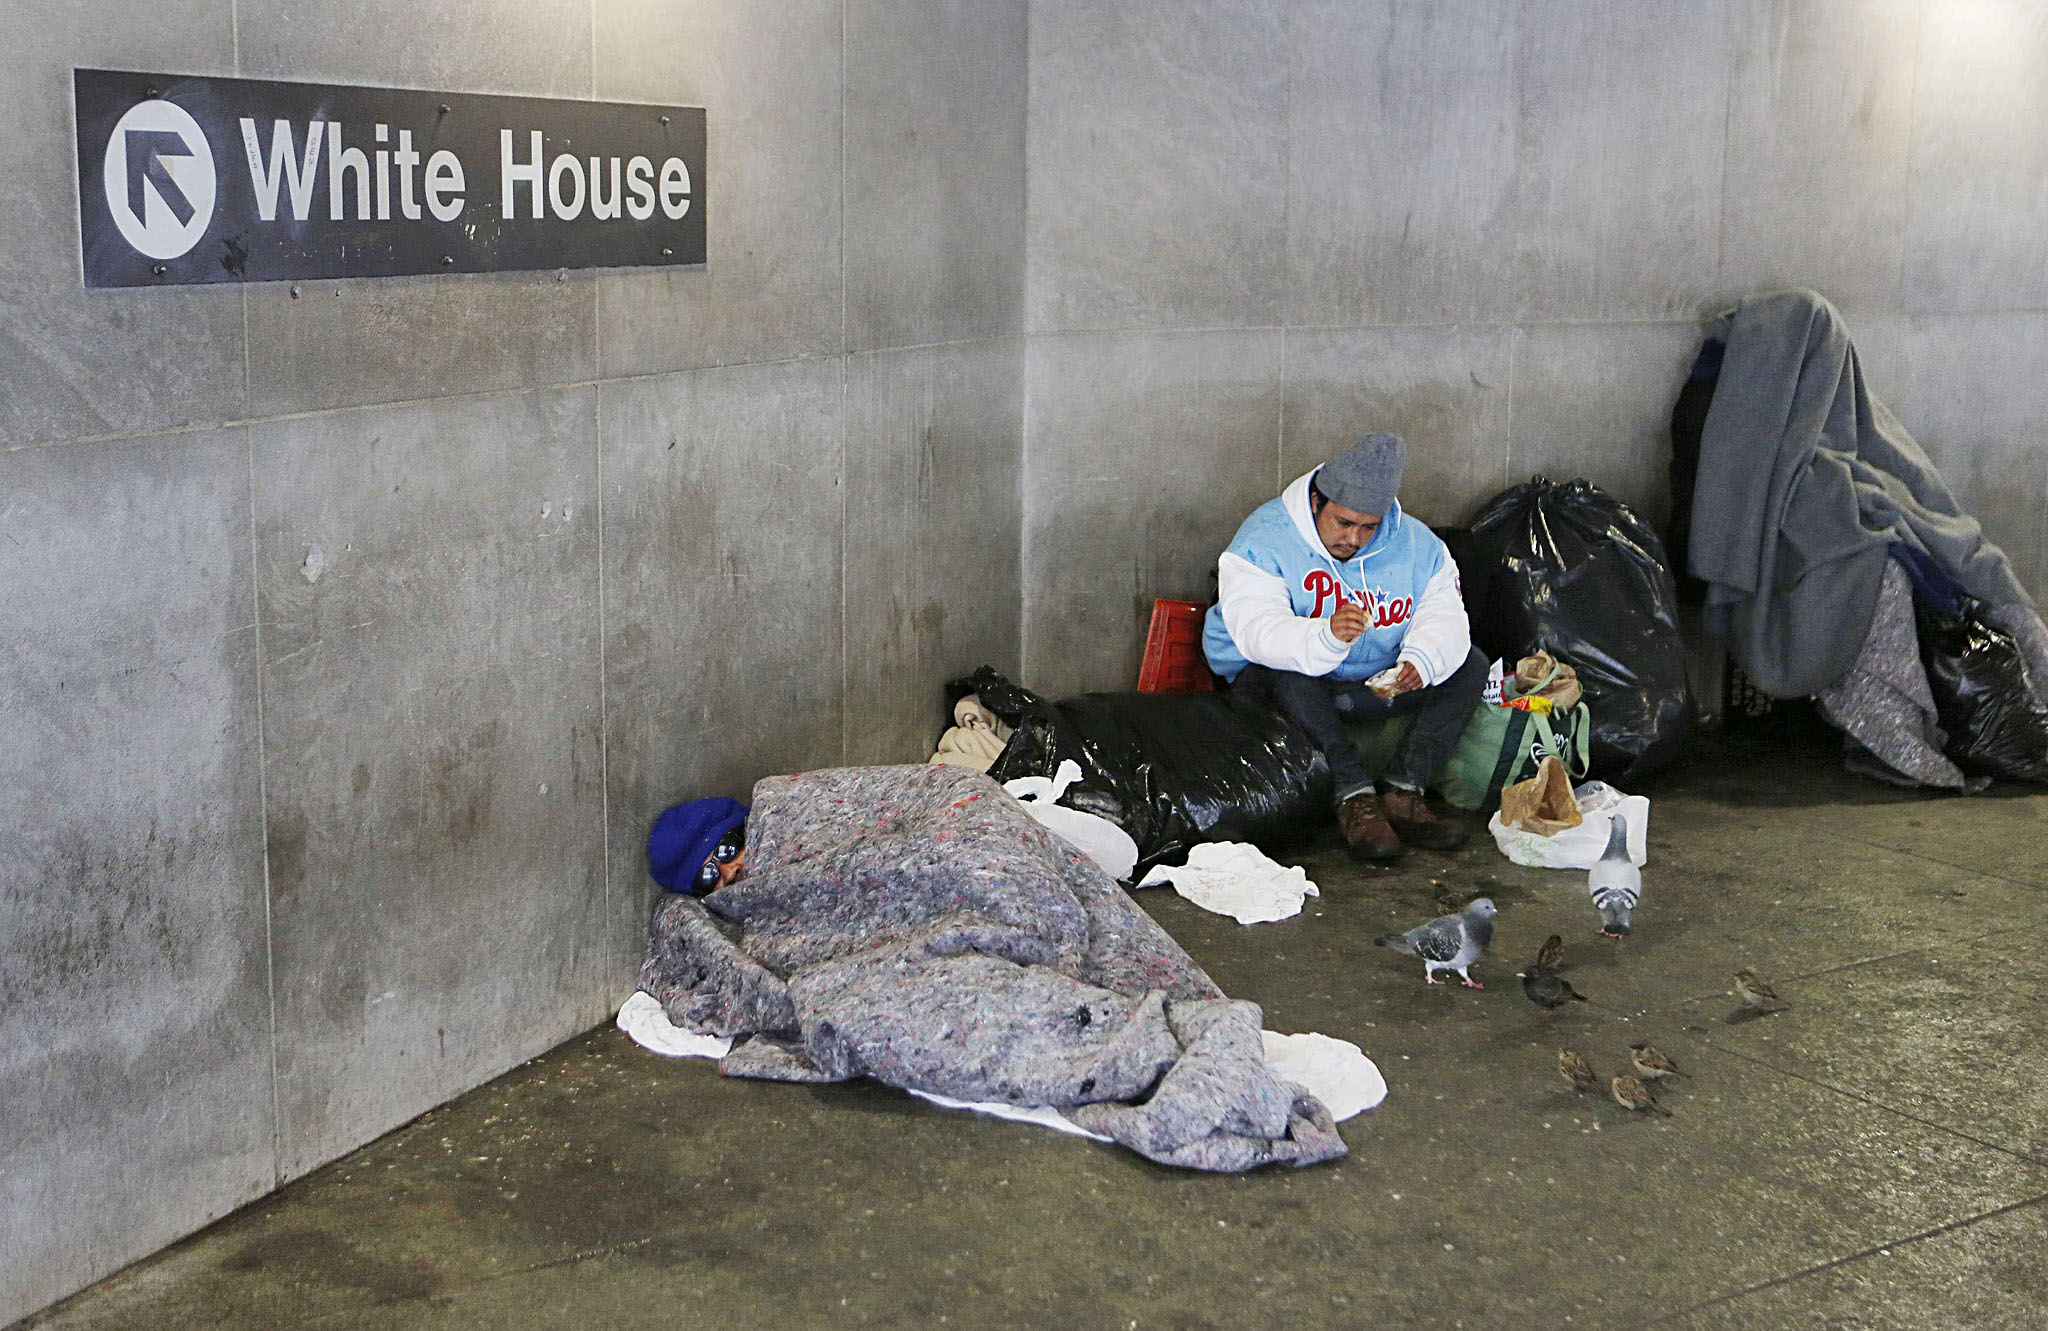 Homeless people bundle up at the McPherson Square Metrorail stop near the White House after the region was pounded with snow overnight around Washington...Homeless people bundle up at the McPherson Square Metrorail stop near the White House after the region was pounded with snow overnight around Washington, February 13, 2014.    REUTERS/Larry Downing